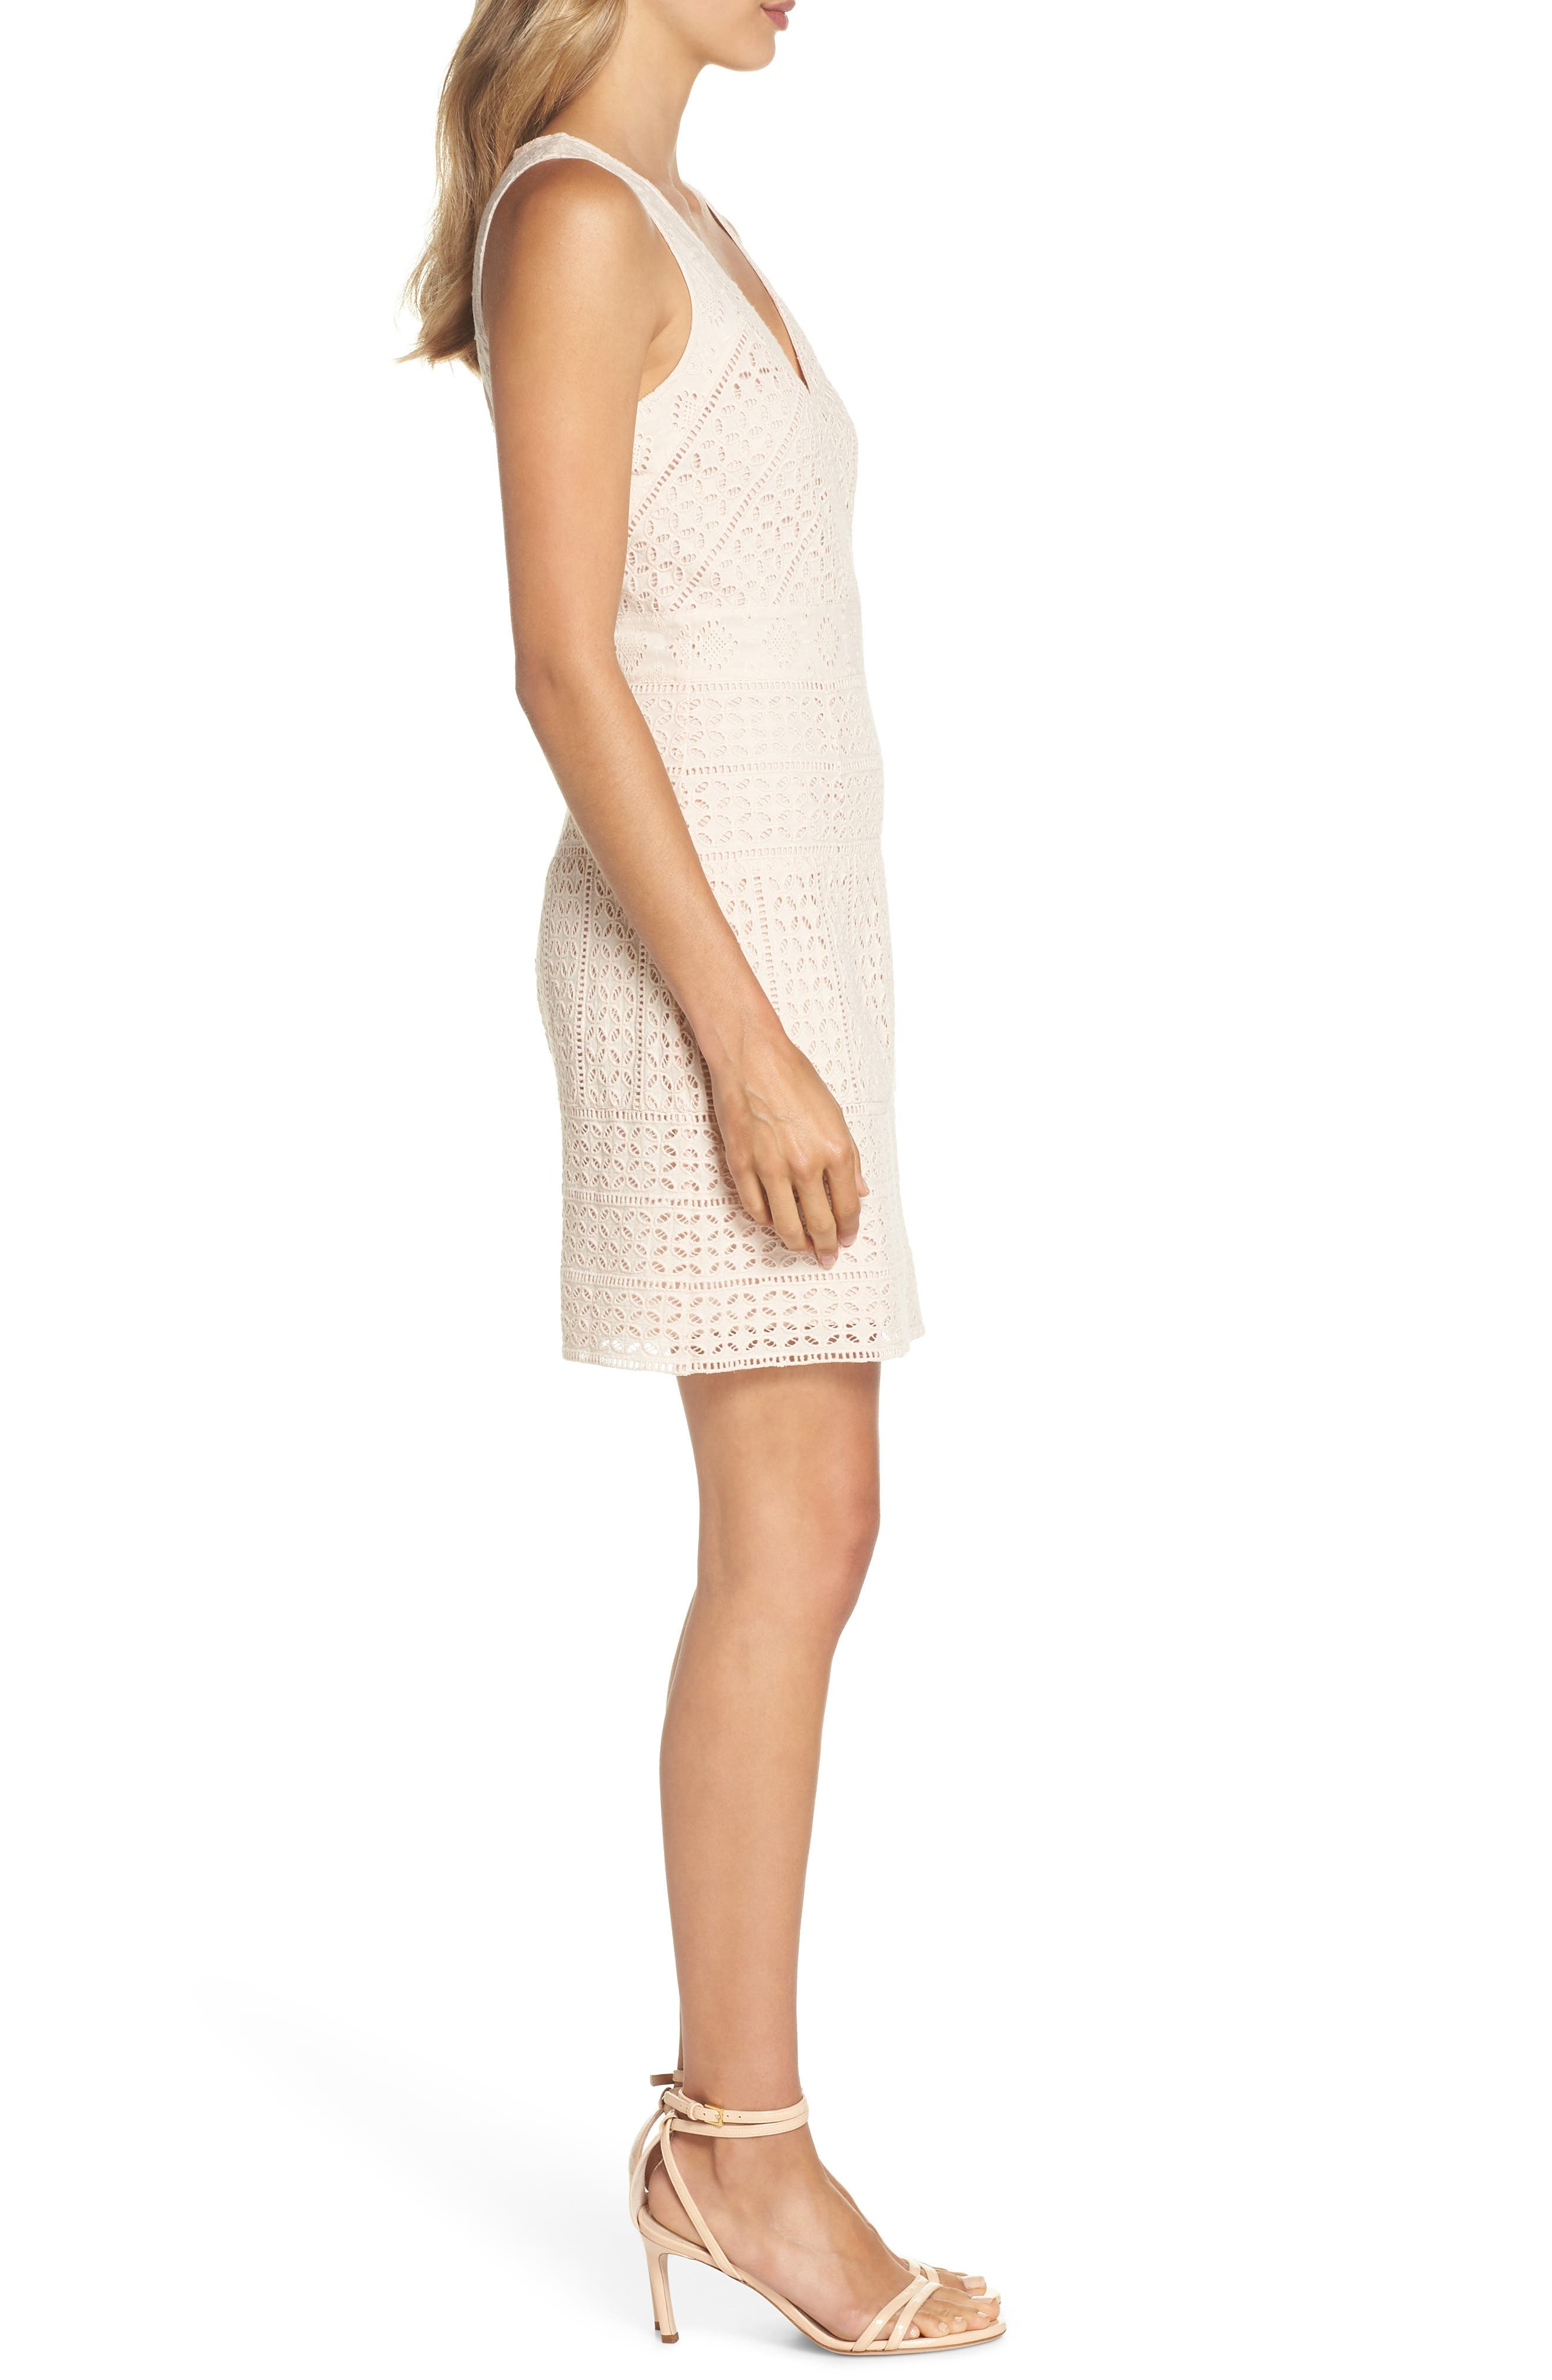 Schiffley Summer Cage Cotton Dress by French Connection